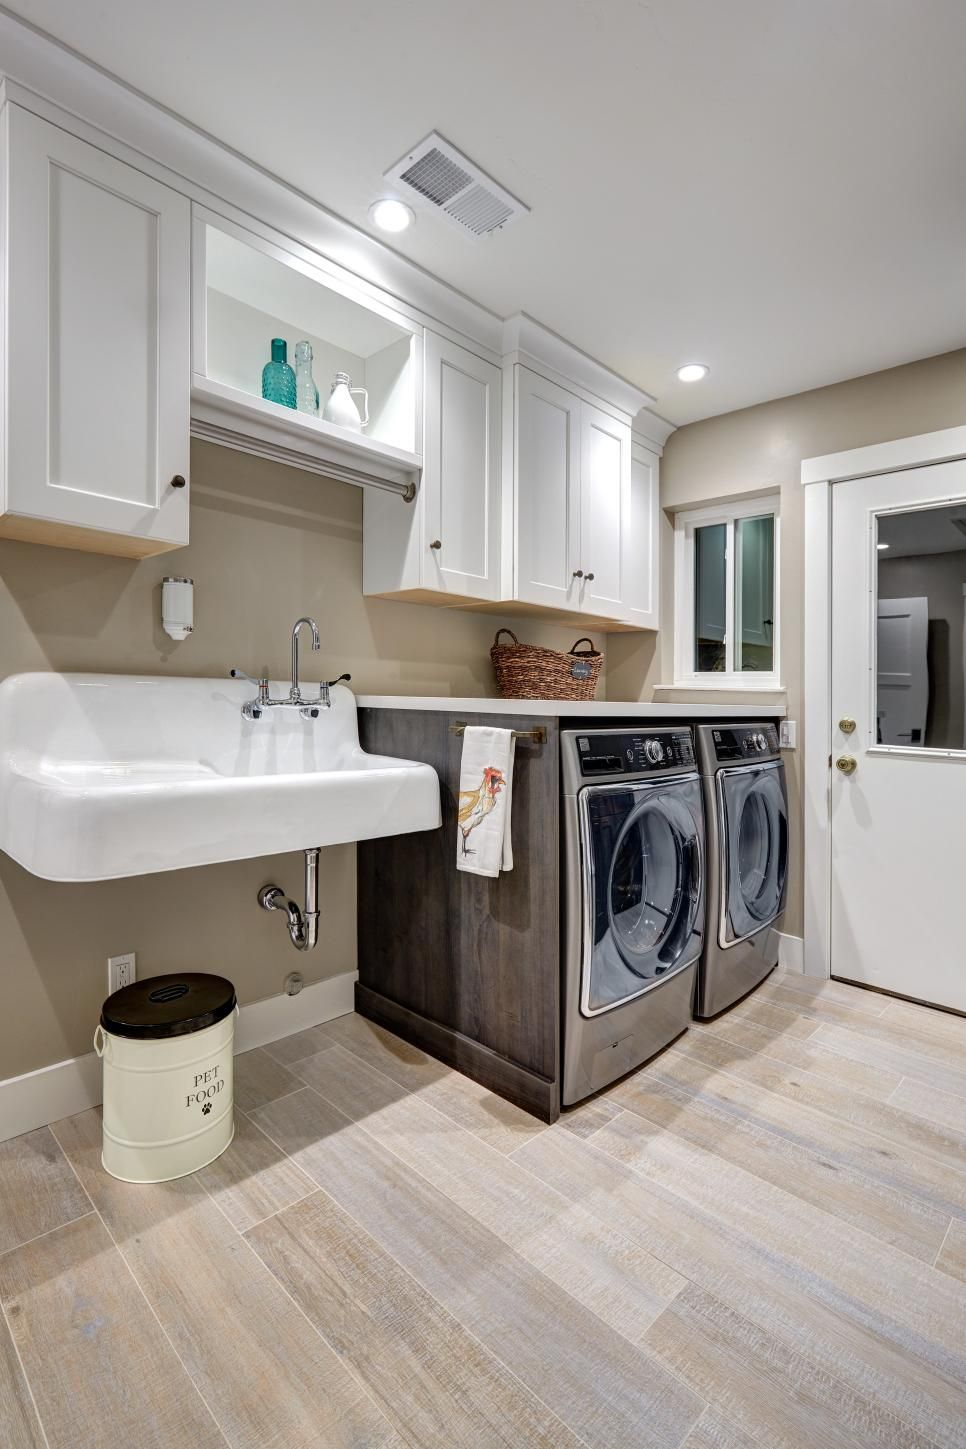 stewart requirements laguna loccie better utility manly laundryroom laundry impeccable storage homes cabinets sink martha wall base seemly also at depot with for room home in idea cabinet kitchen